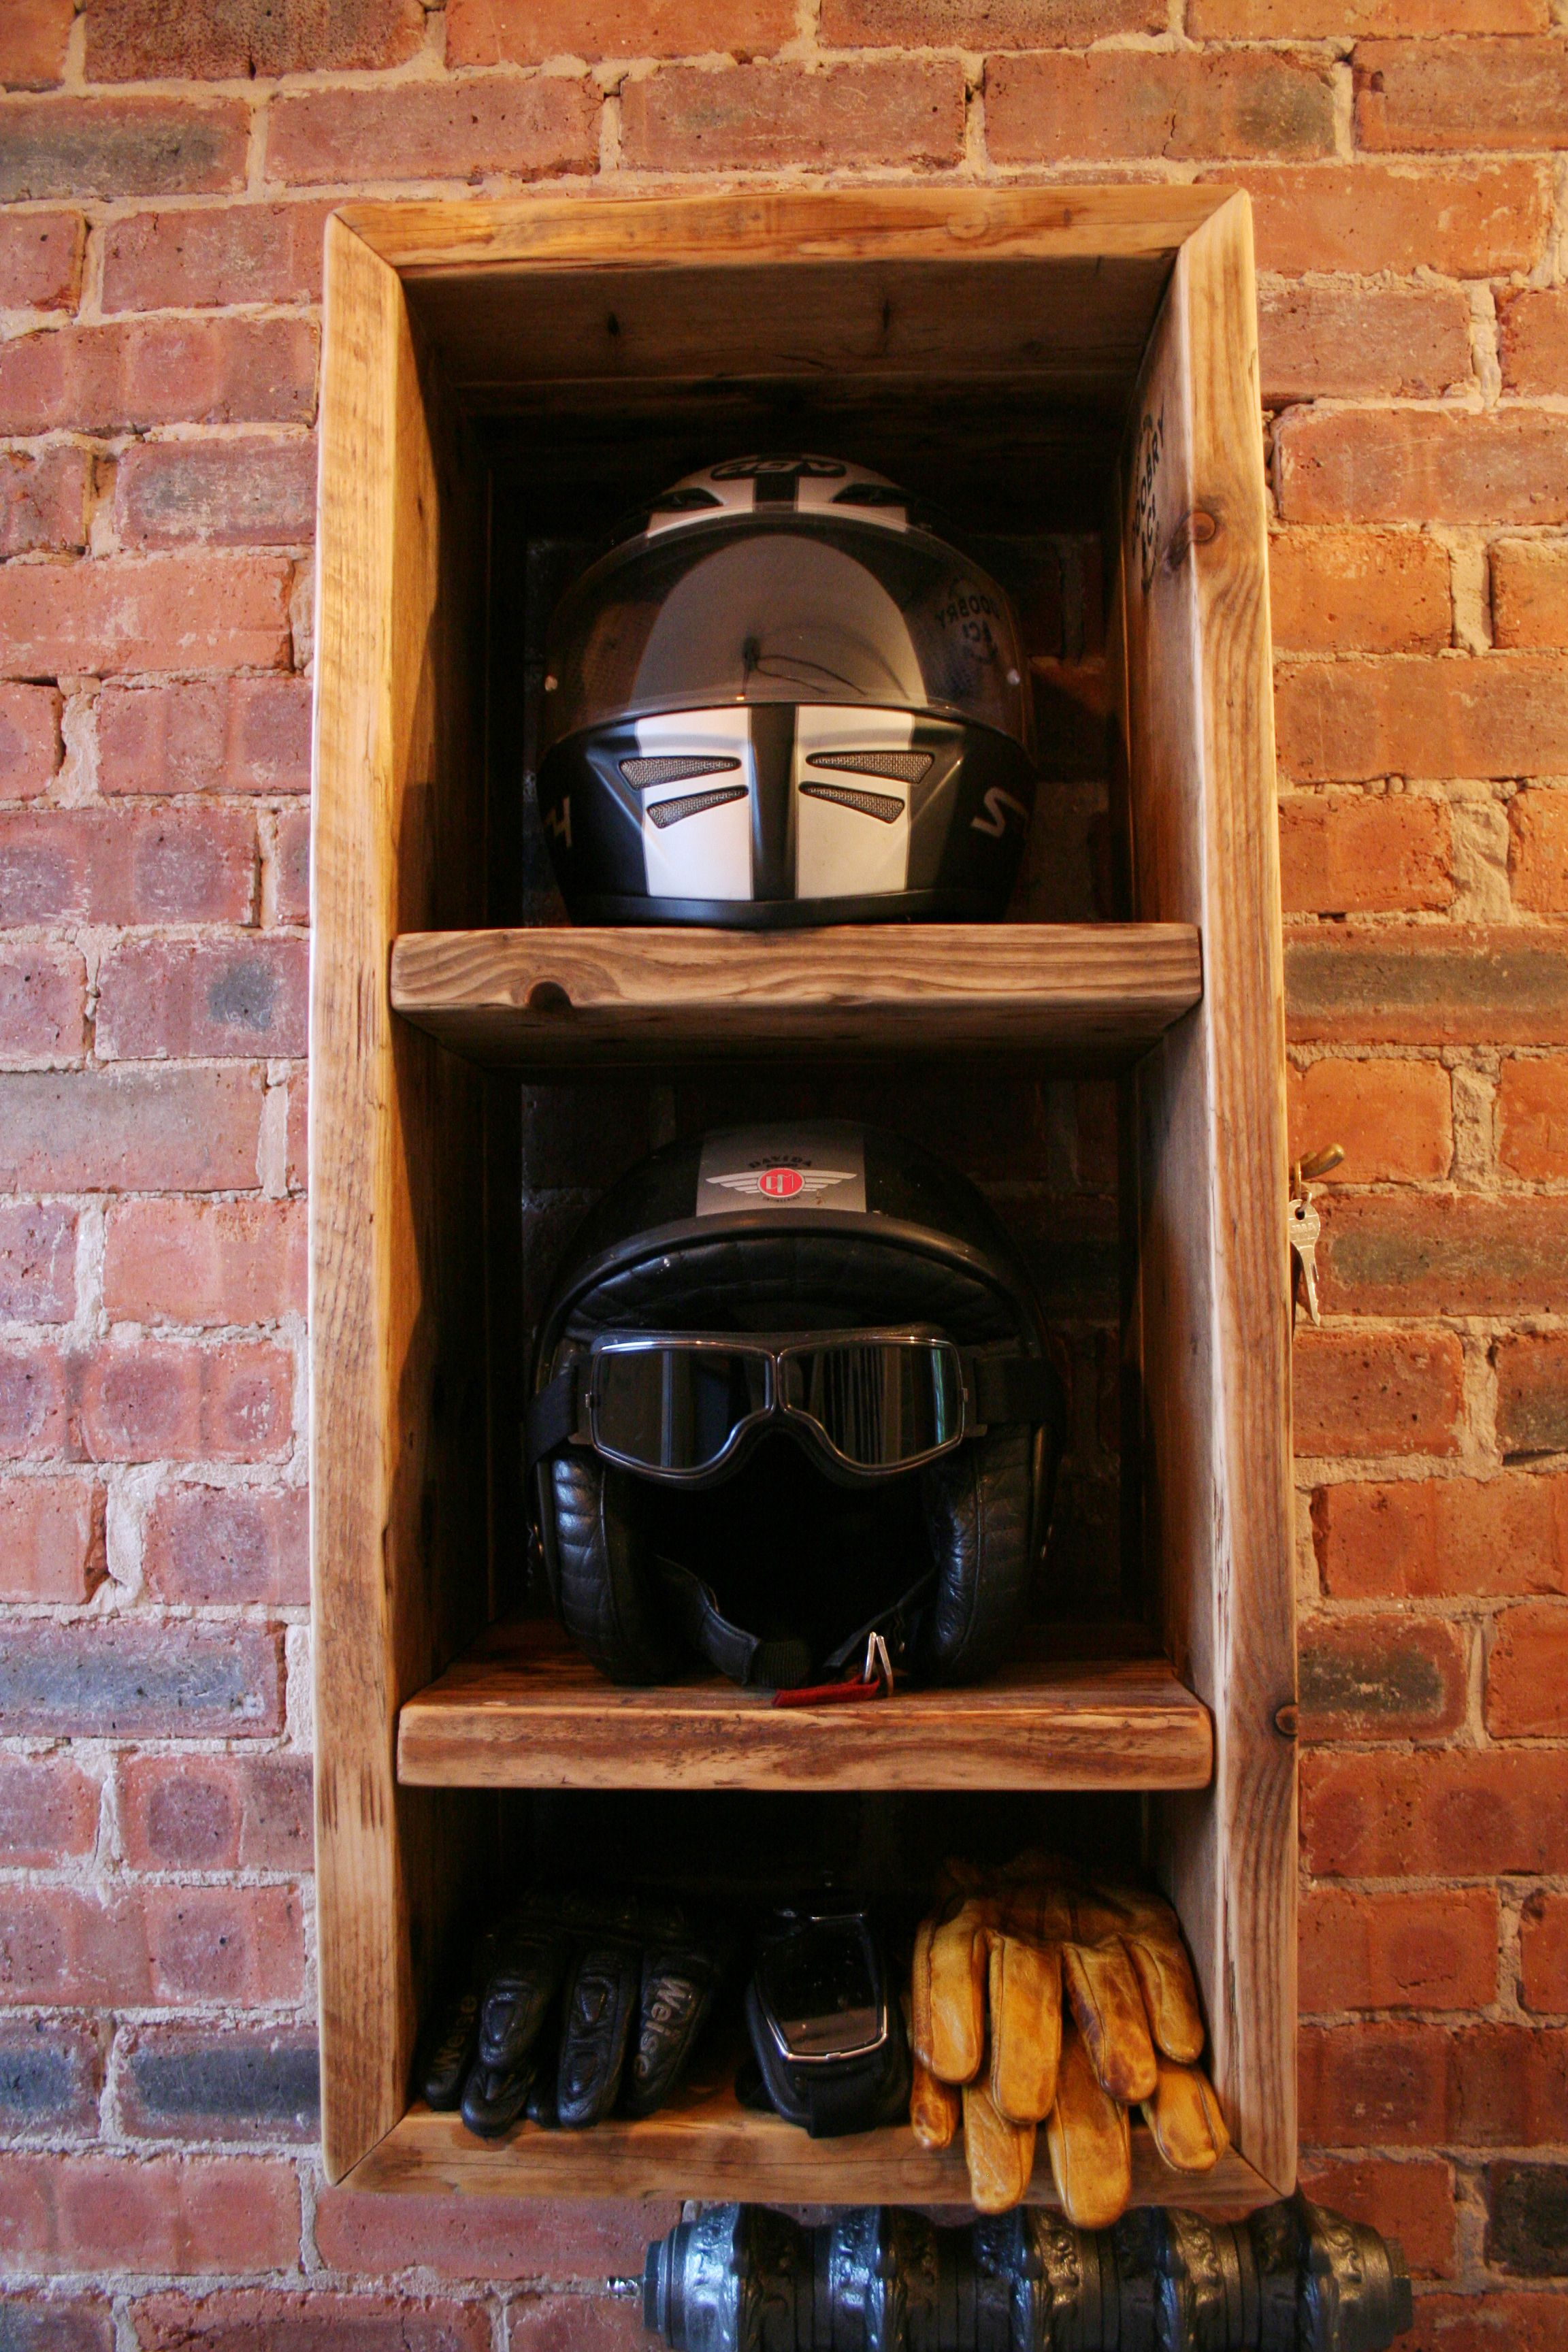 Motorbike Motorcycle helmet storage unit. 2 compartments for helmets, 1 for gloves etc. With antique brass key hooks. Man cave, garage, bike #mancavegarage